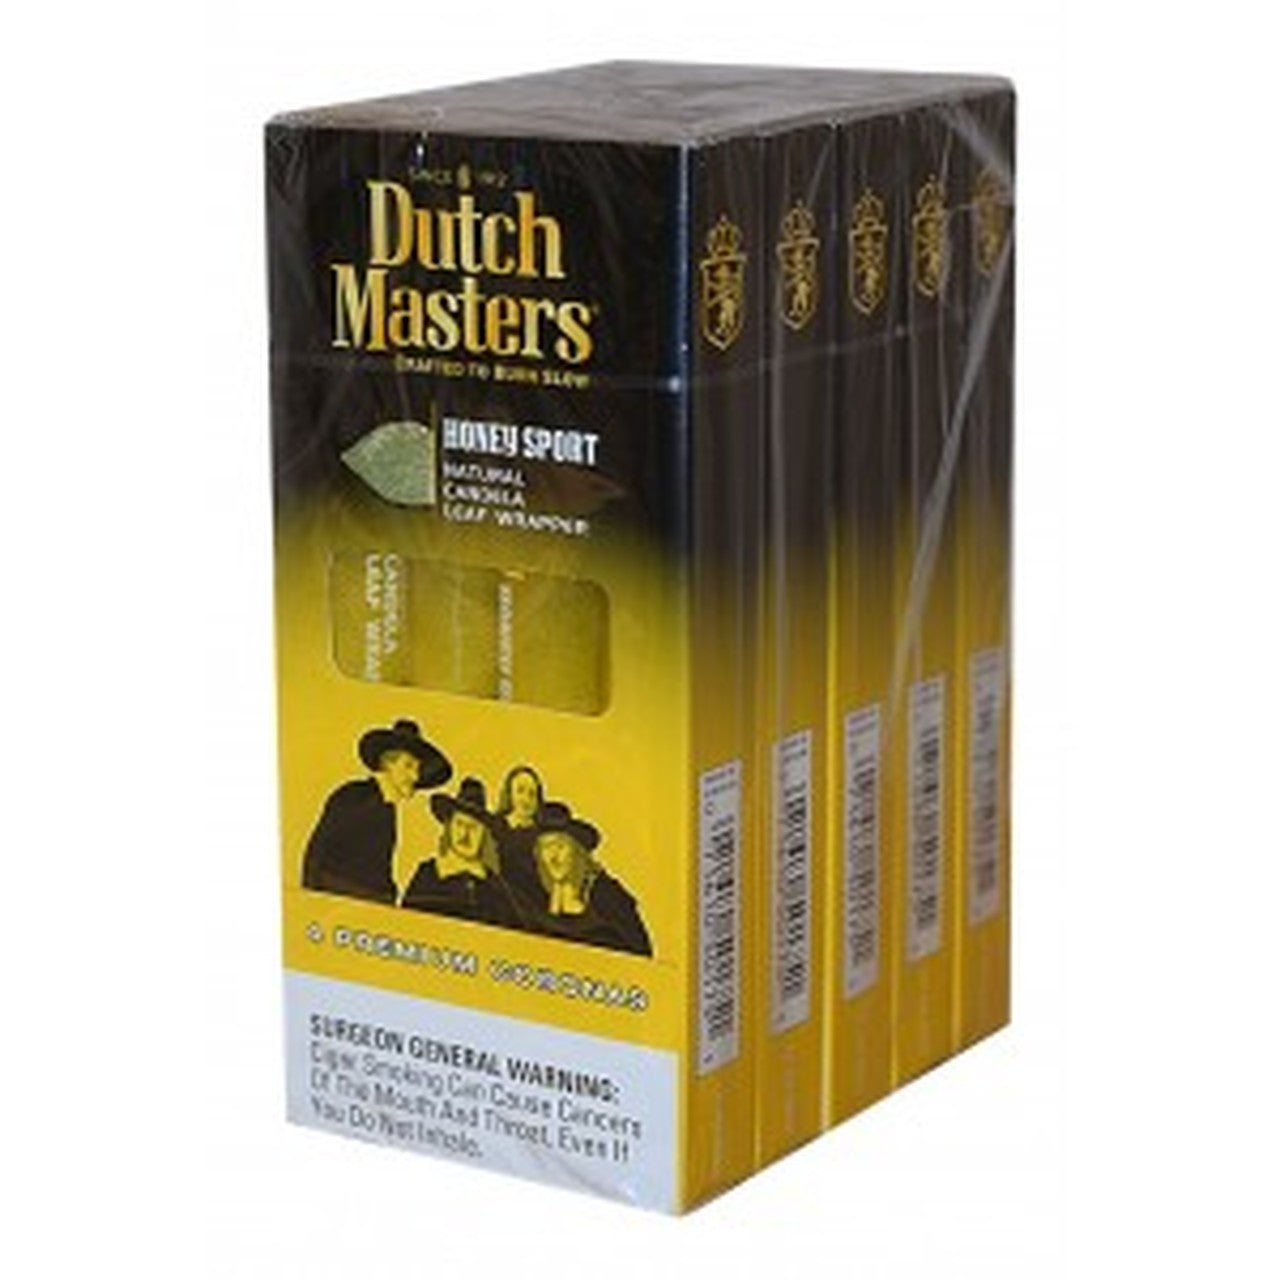 Dutch Masters Honey Sports 5 Packs of 4